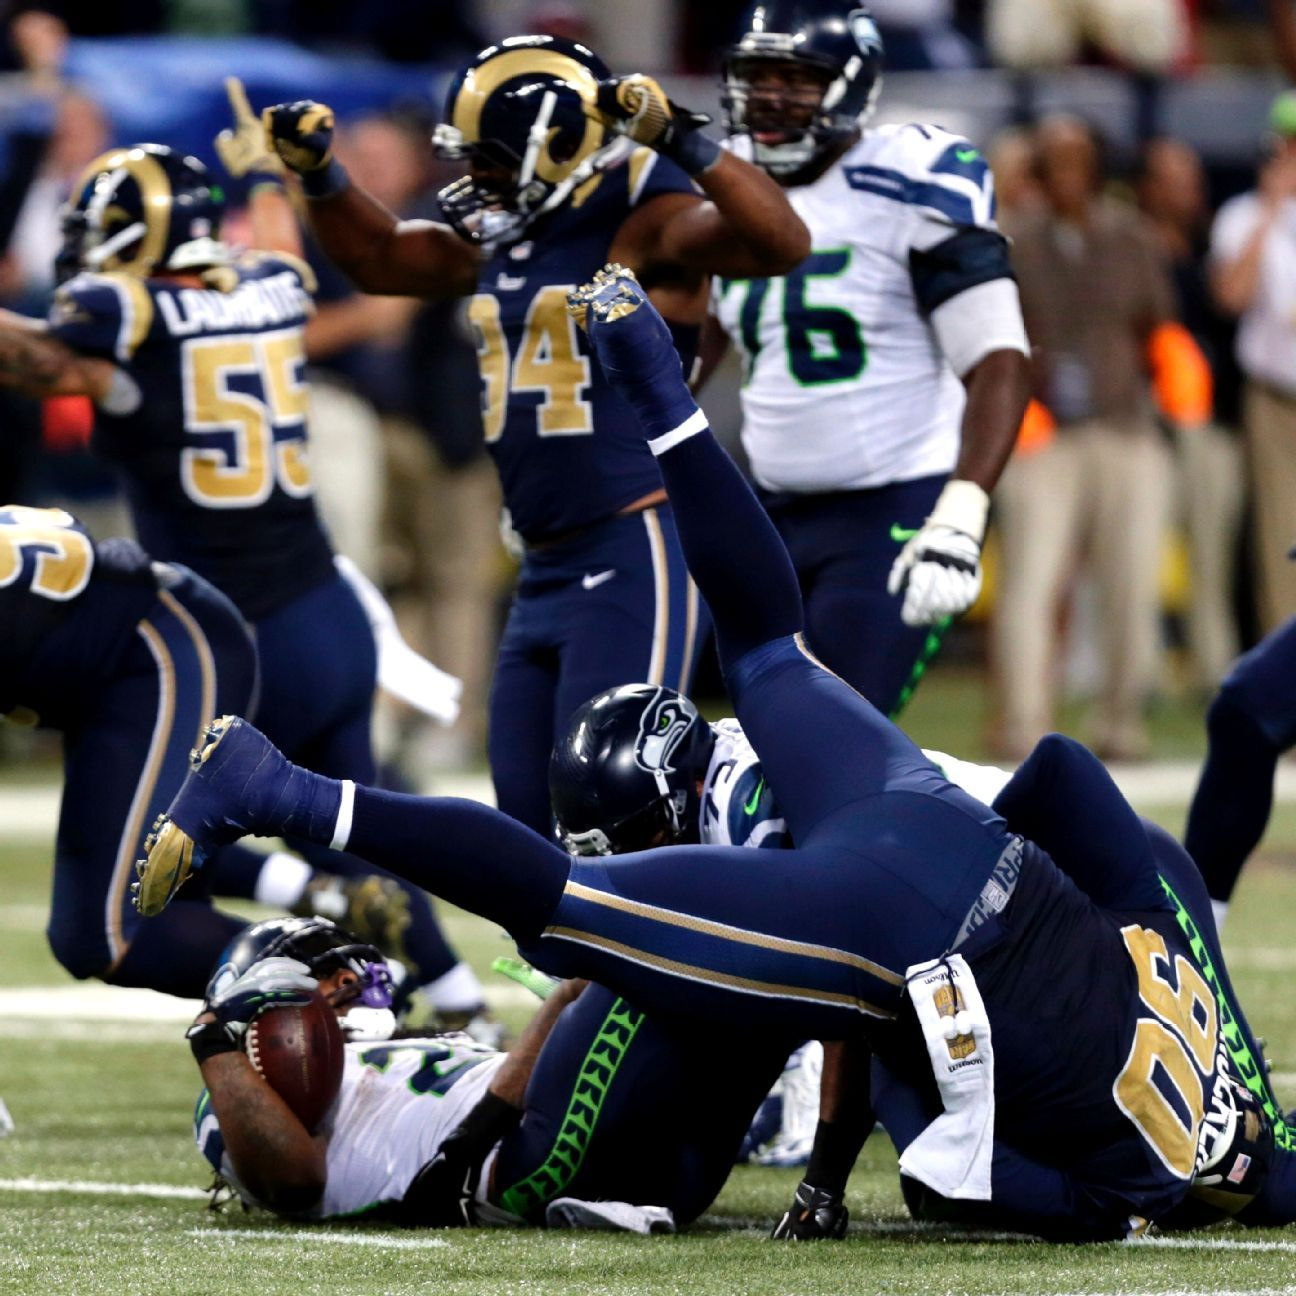 Rams' Brockers said he knew Seahawks were going to give Marshawn Lynch the ball